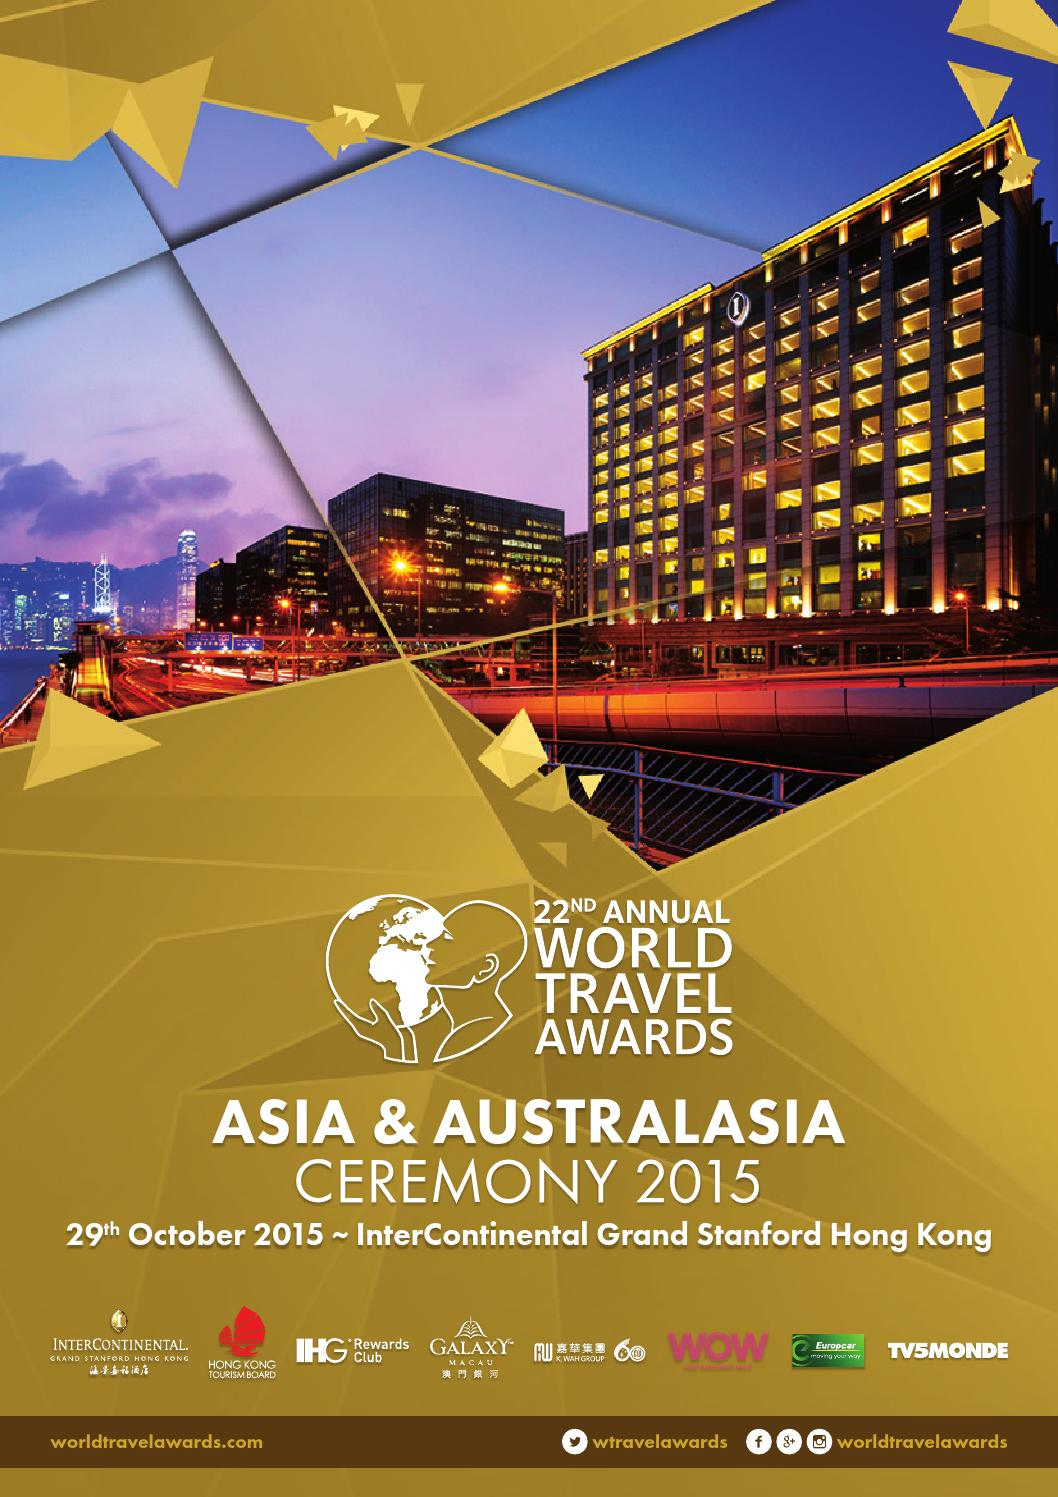 Personalised service at the villa club of kempinski hotel haitang bay - World Travel Awards Asia Australasia Gala Ceremony 2015 By World Travel Awards Issuu